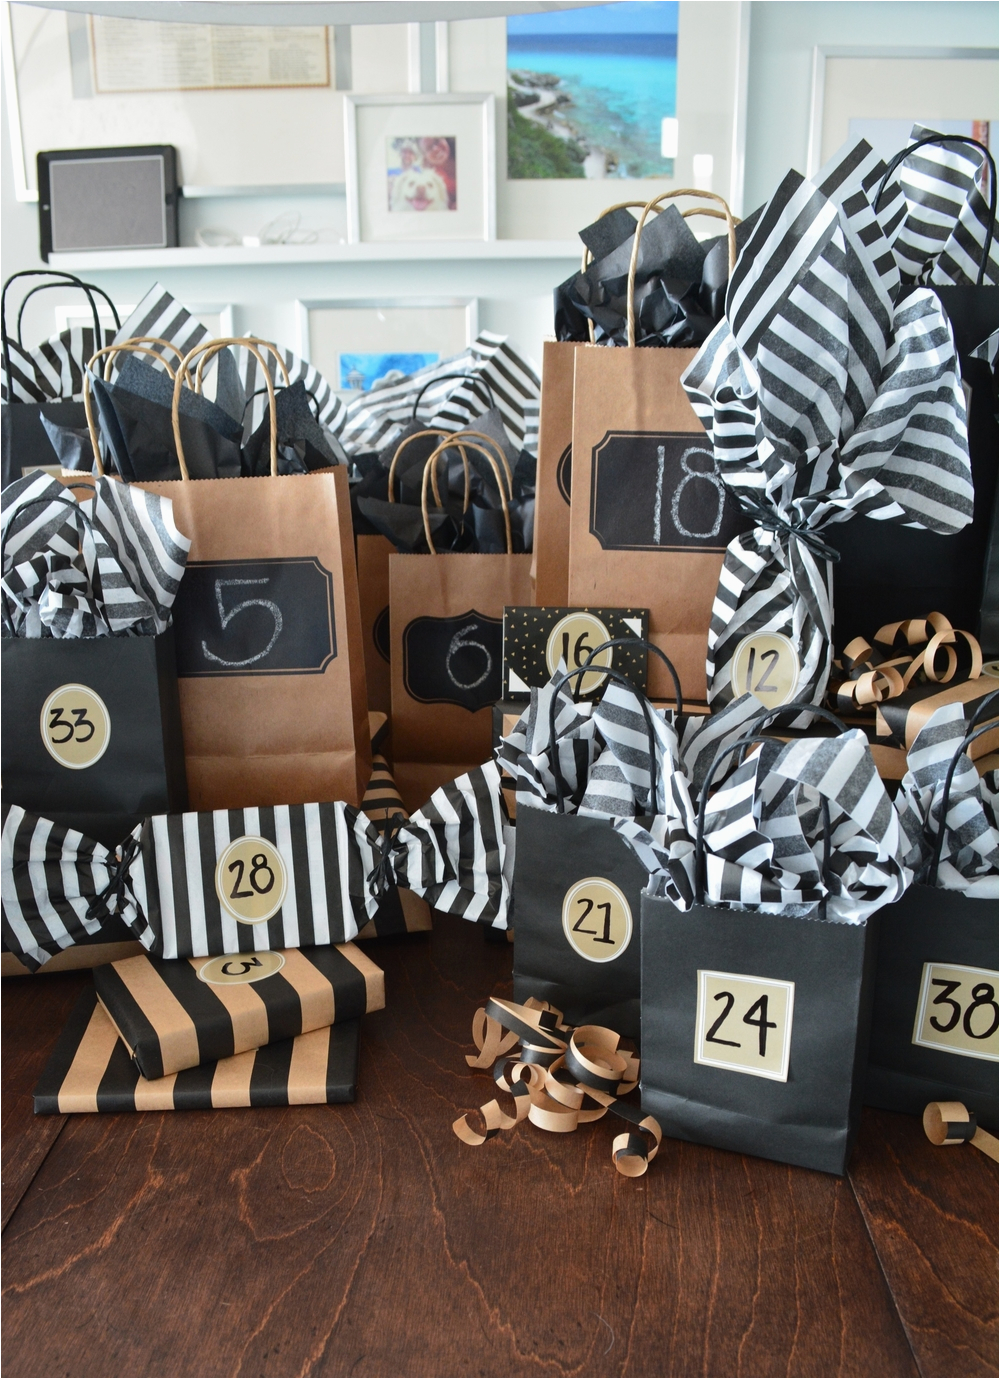 40 presents for the 40th birthday girl